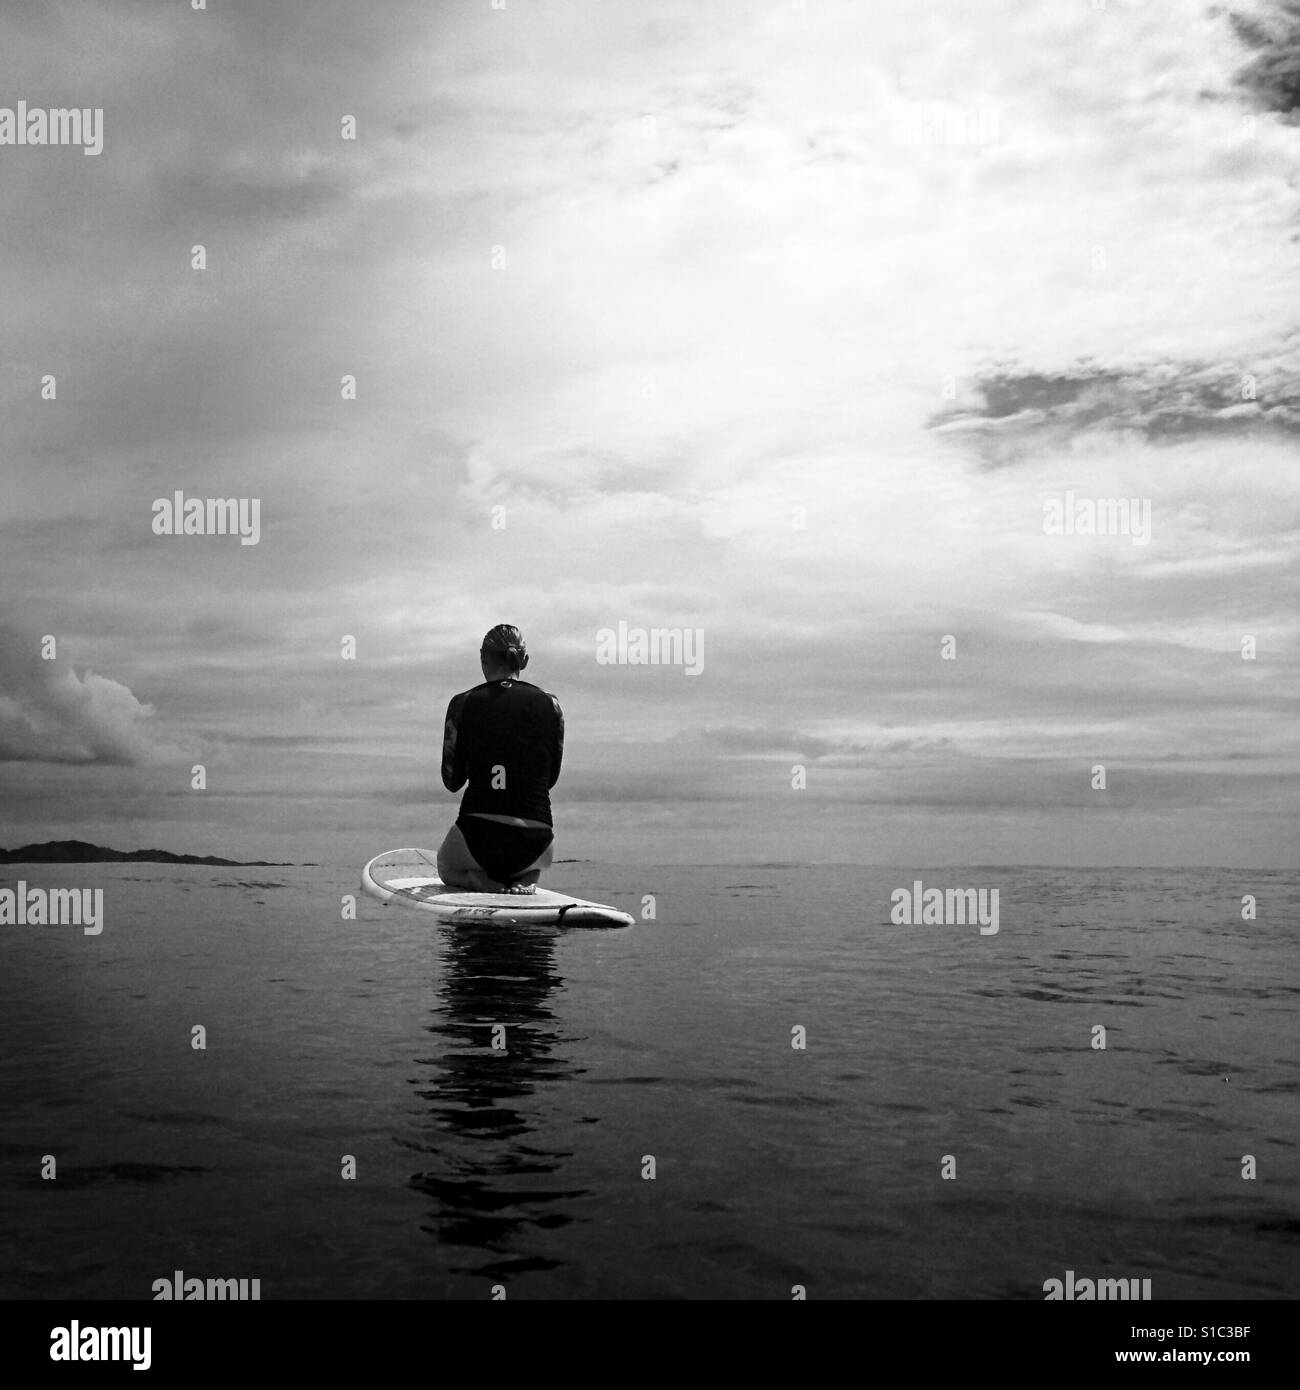 A black and white photo of a young women on a paddle board in the ocean. Tavarua, Fiji. - Stock Image